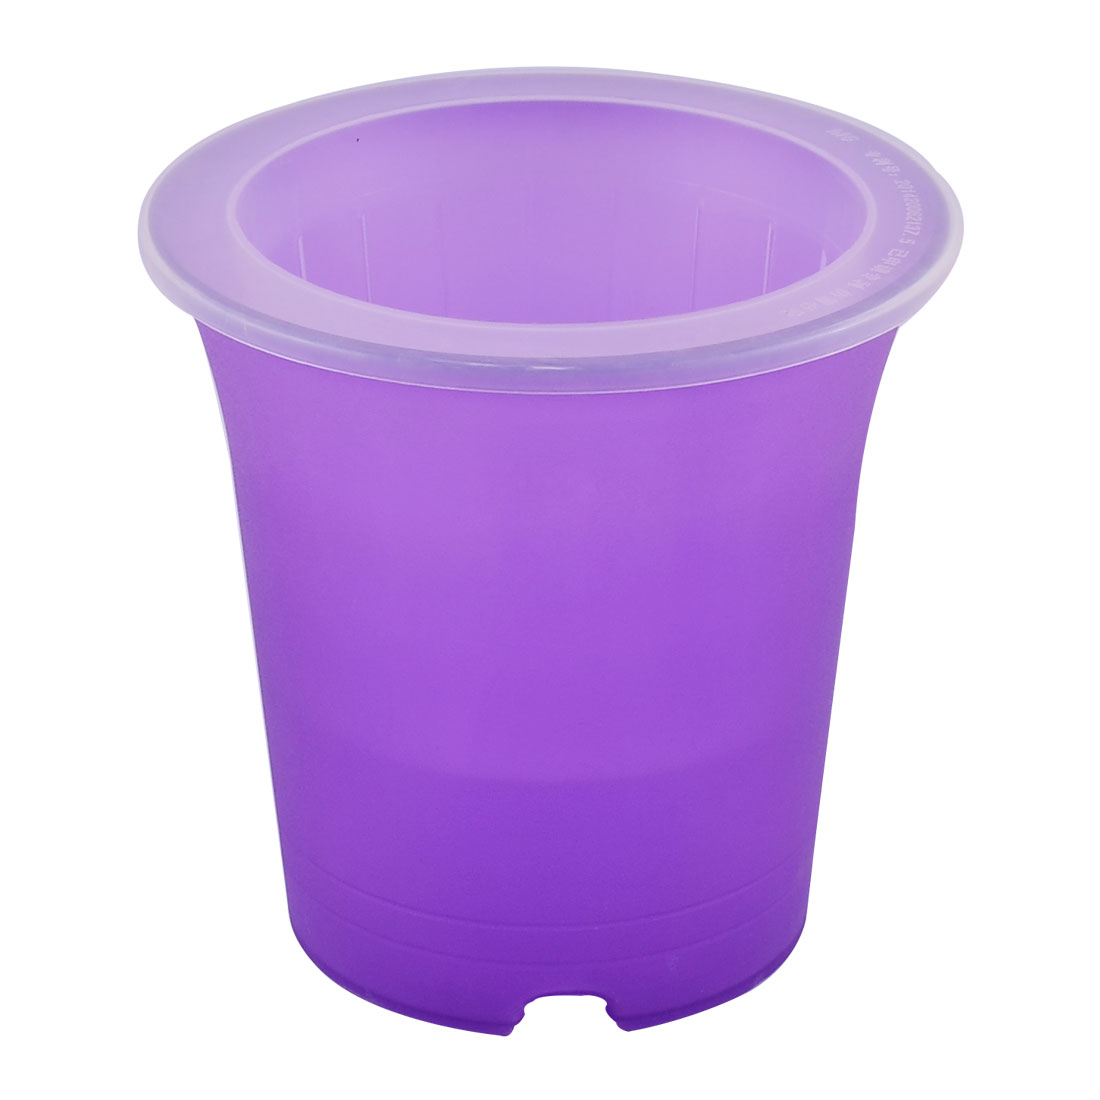 Home Decorative Plastic Double Layers Self Watering Planter Basket Purple